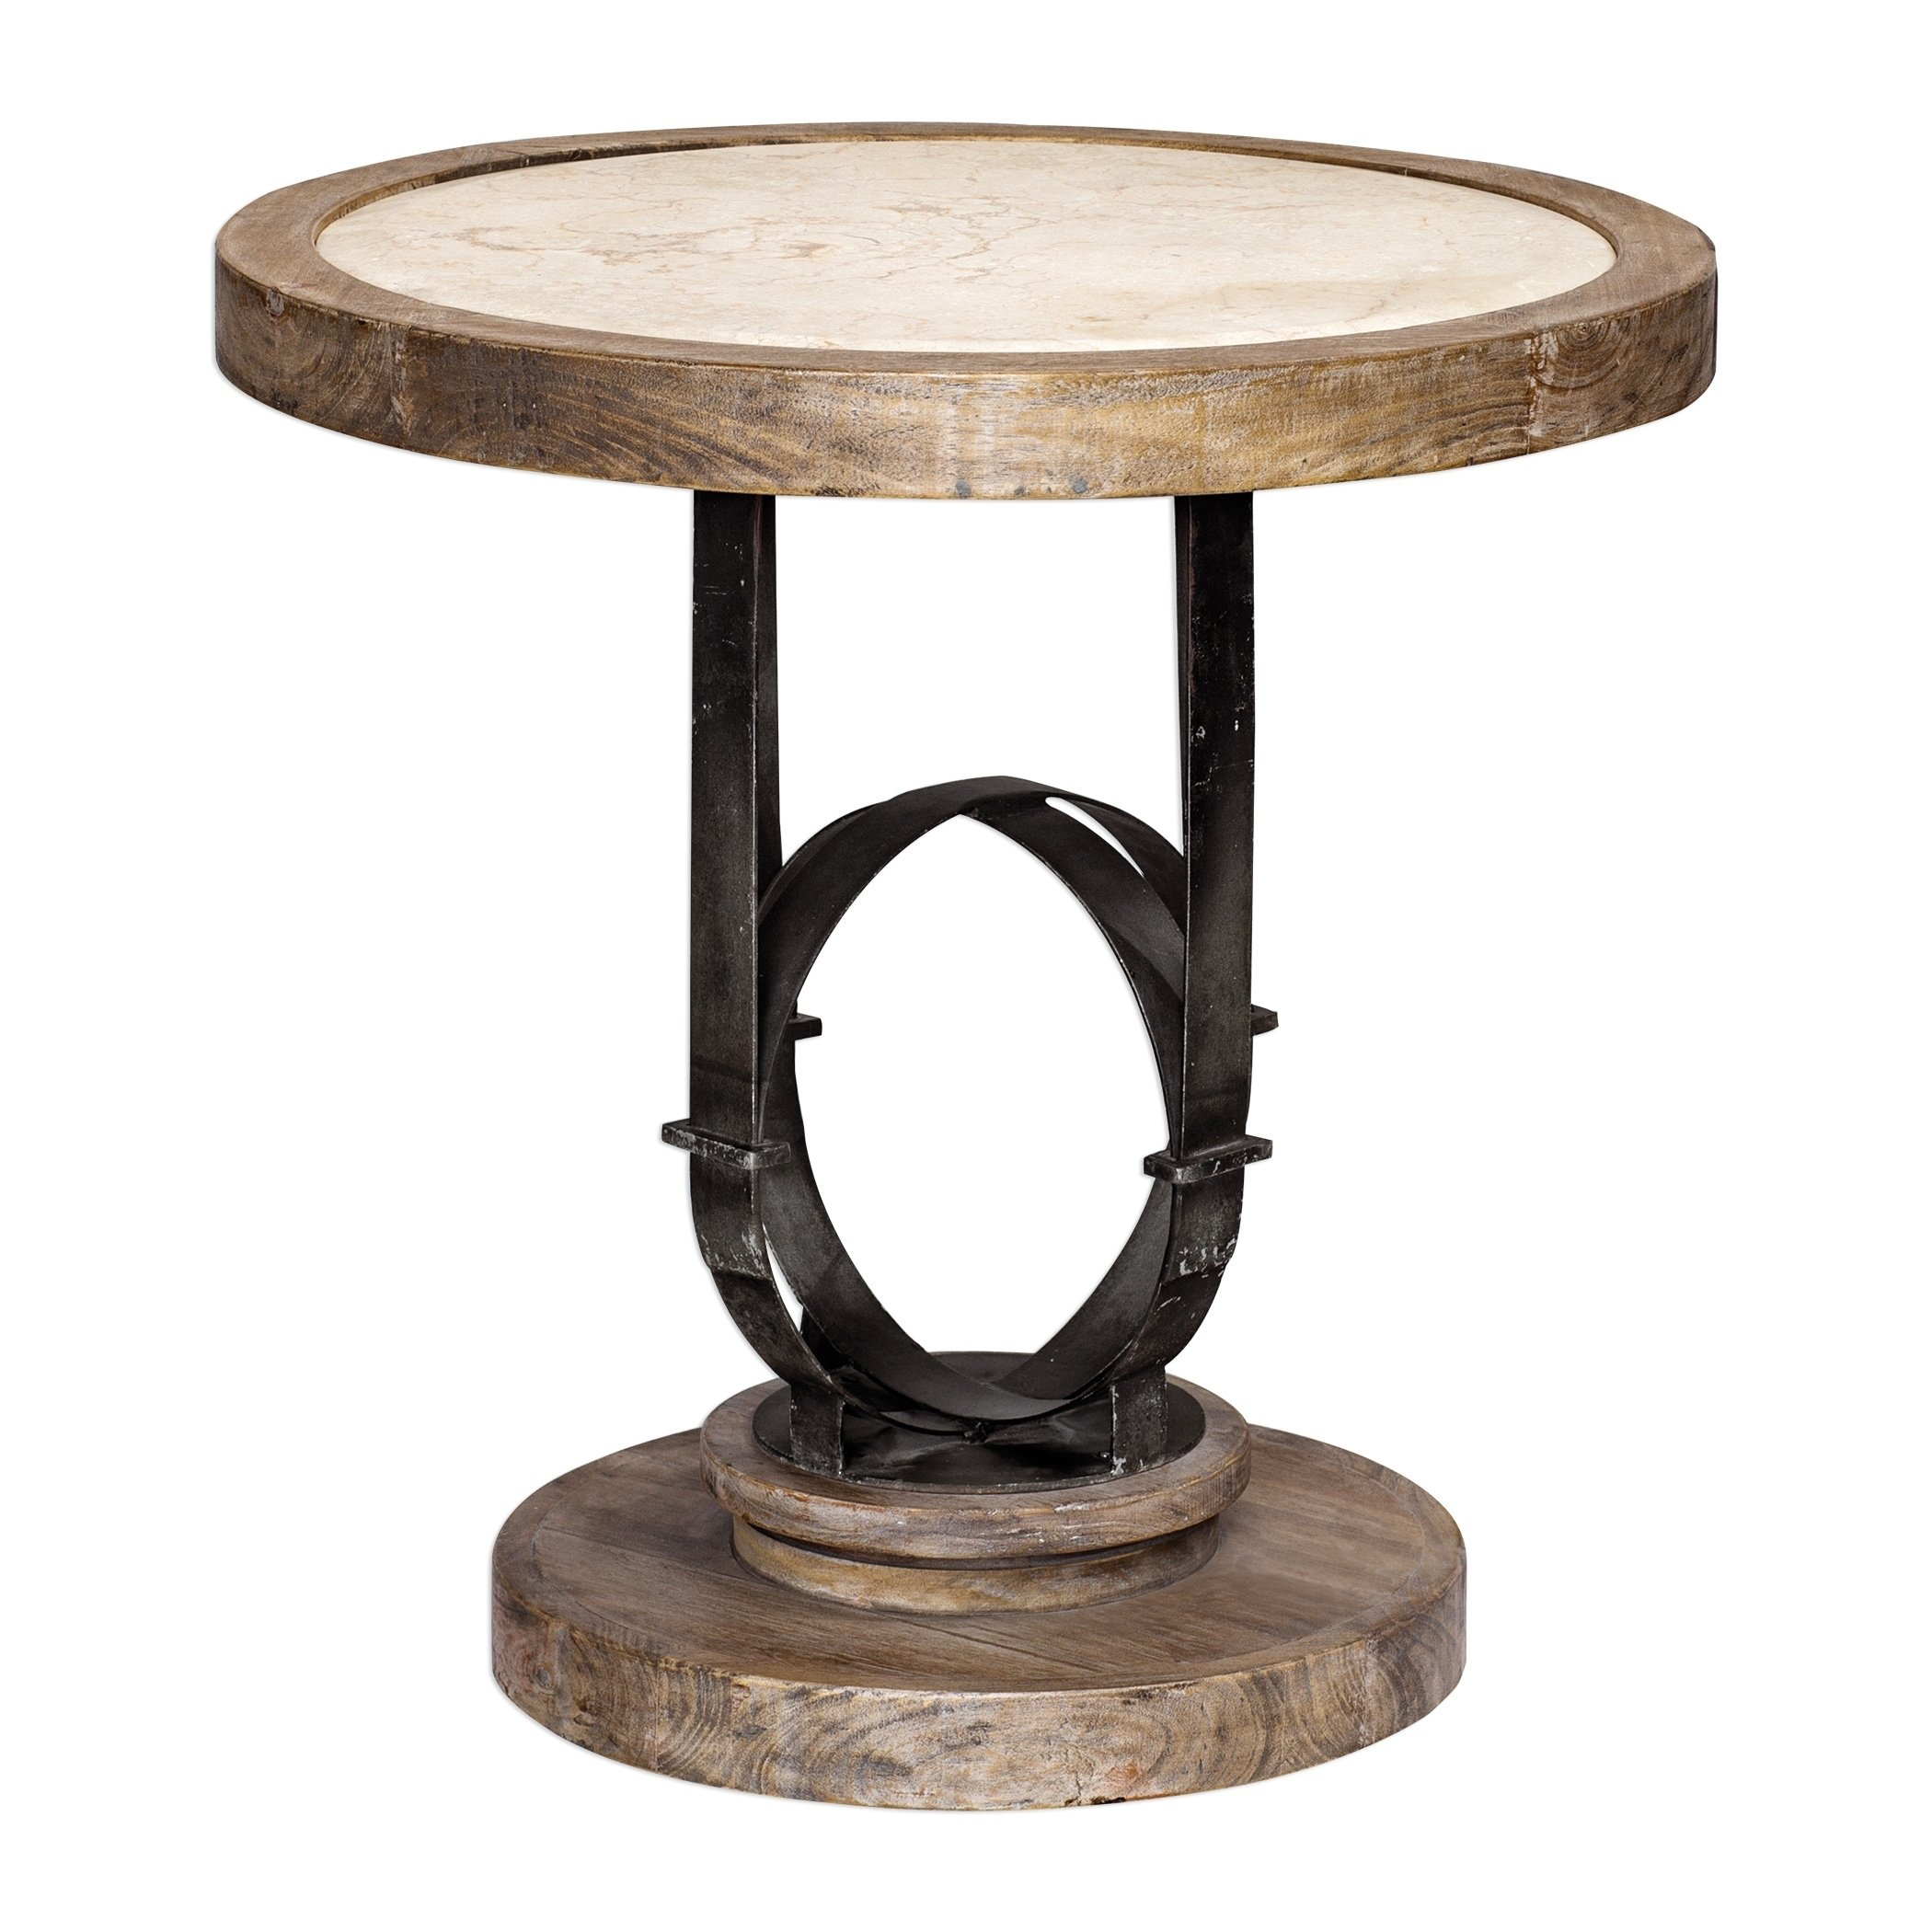 uttermost sydney light oak accent table free shipping today wood ashley signature coffee plain cloths resin wicker patio side black square cherry clearance samuelle end sofa sams